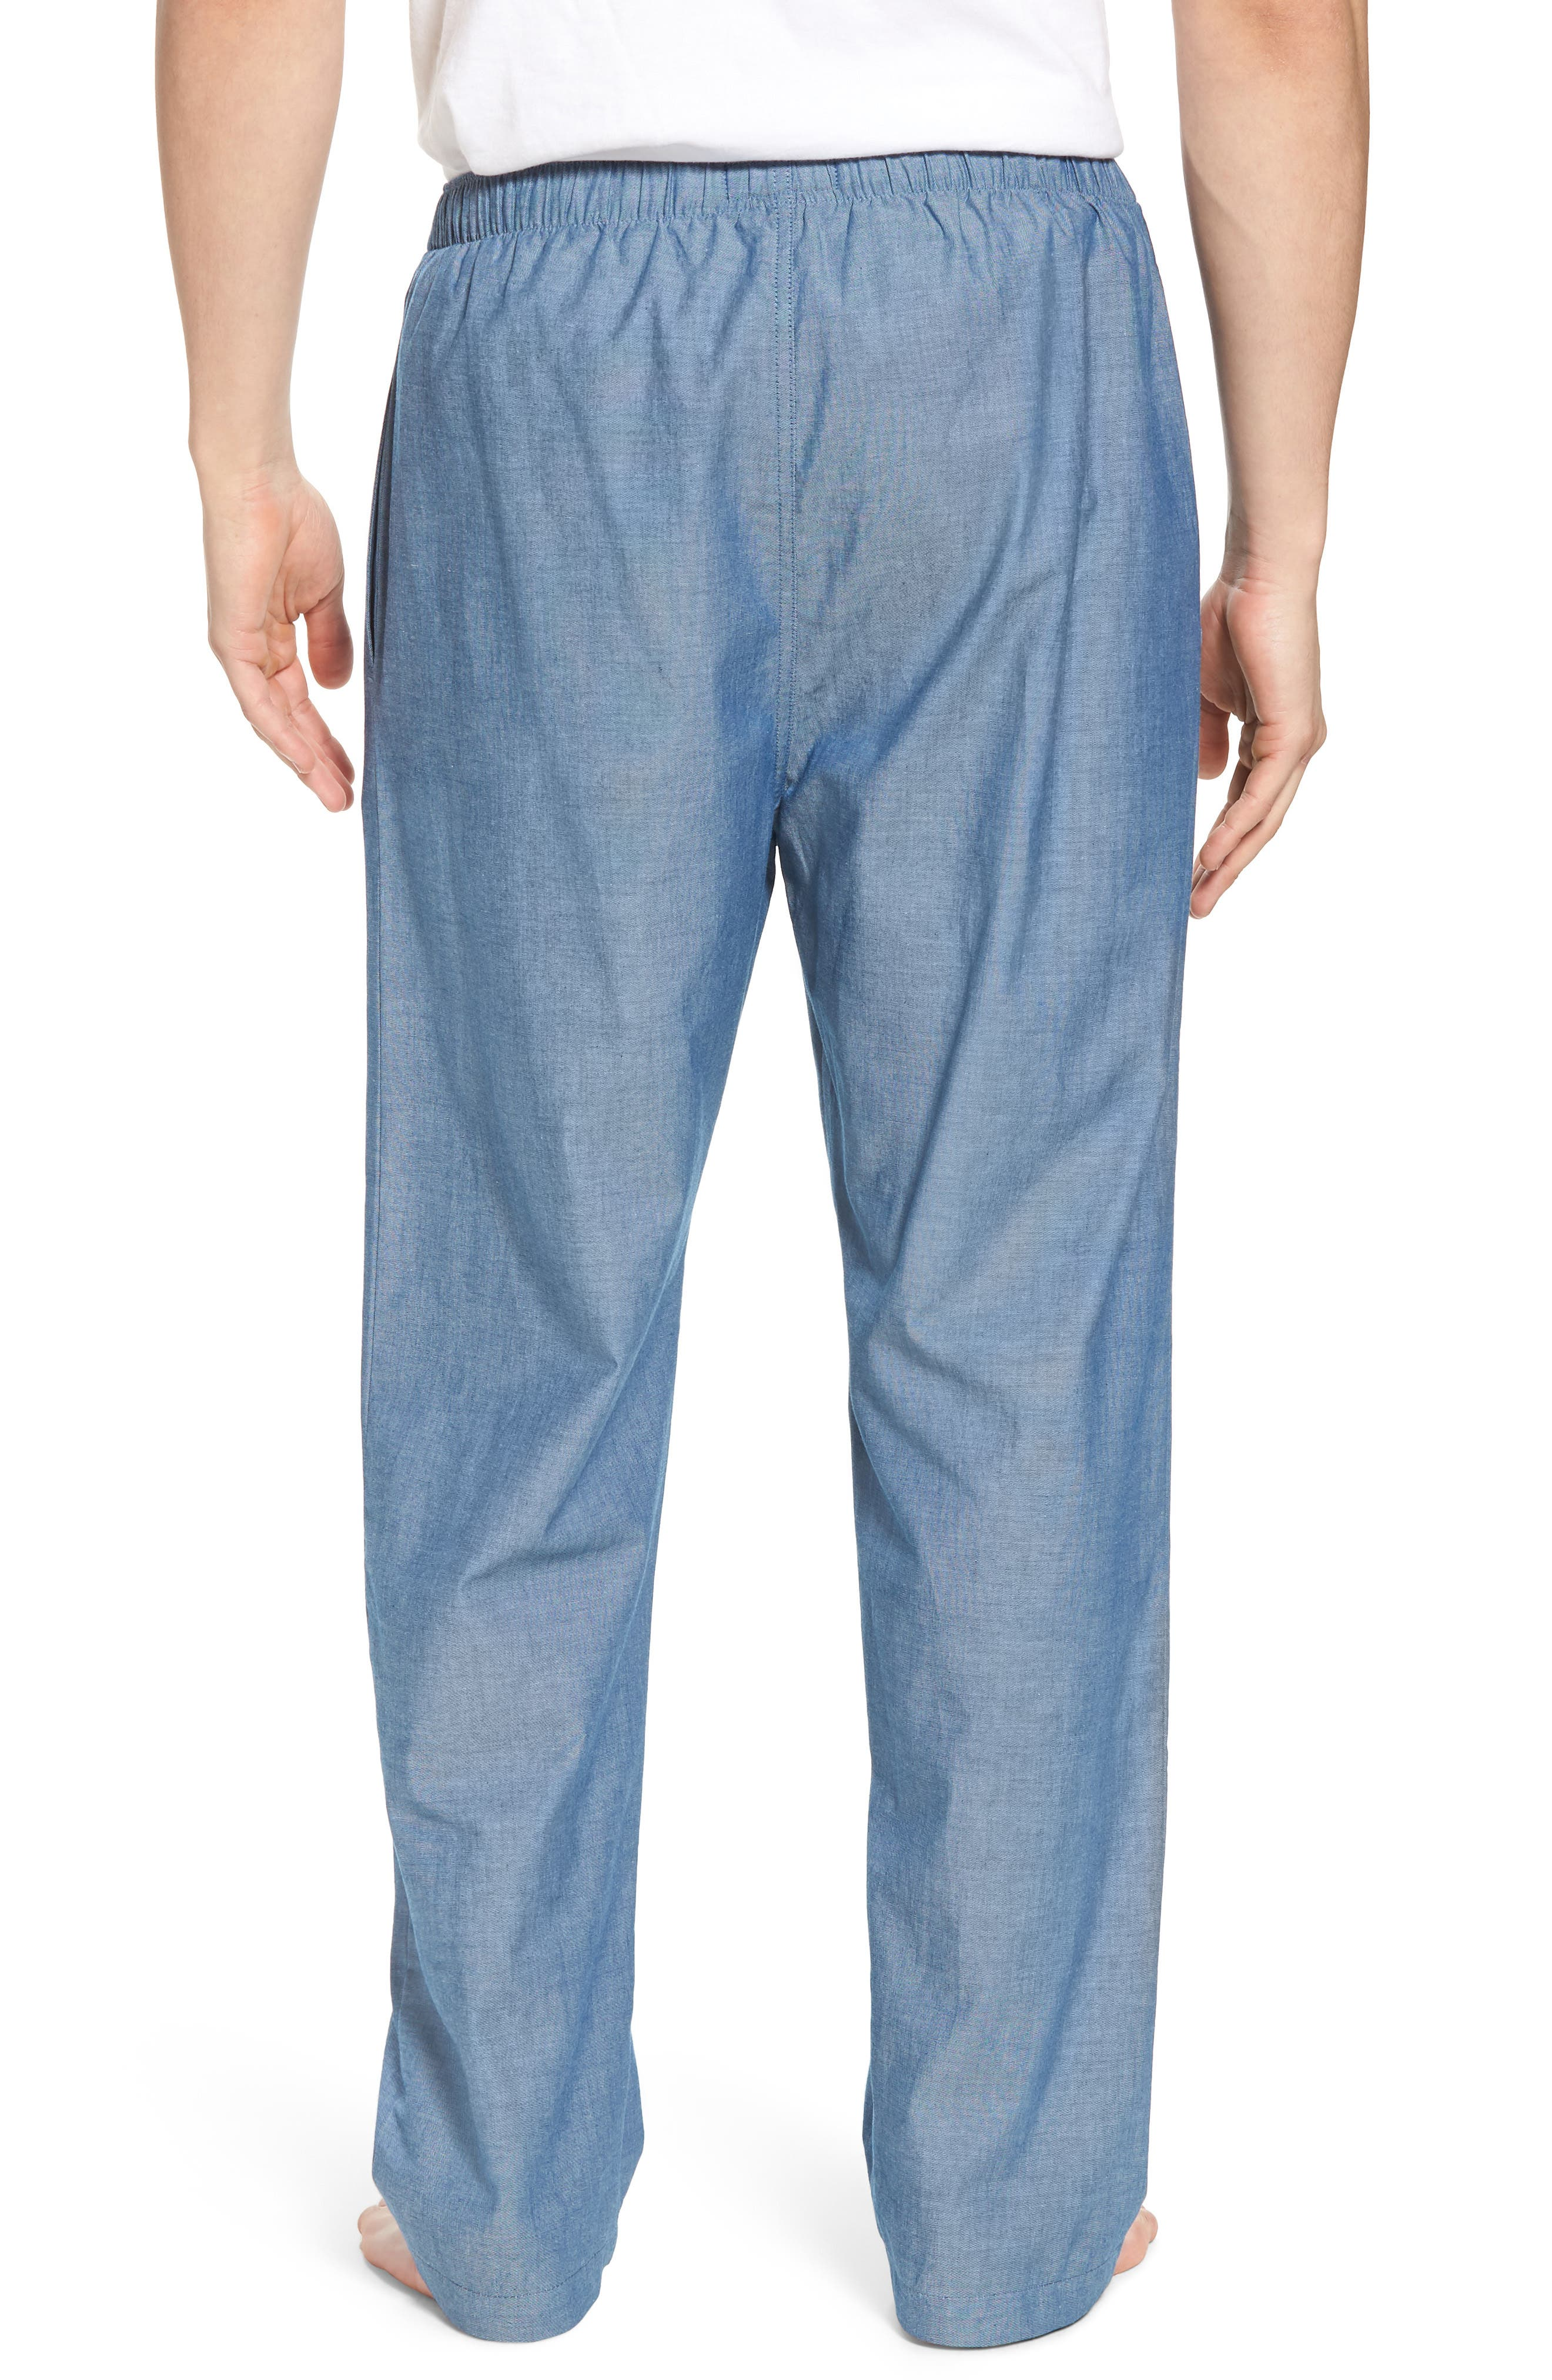 Chambray Woven Lounge Pants,                             Alternate thumbnail 2, color,                             424